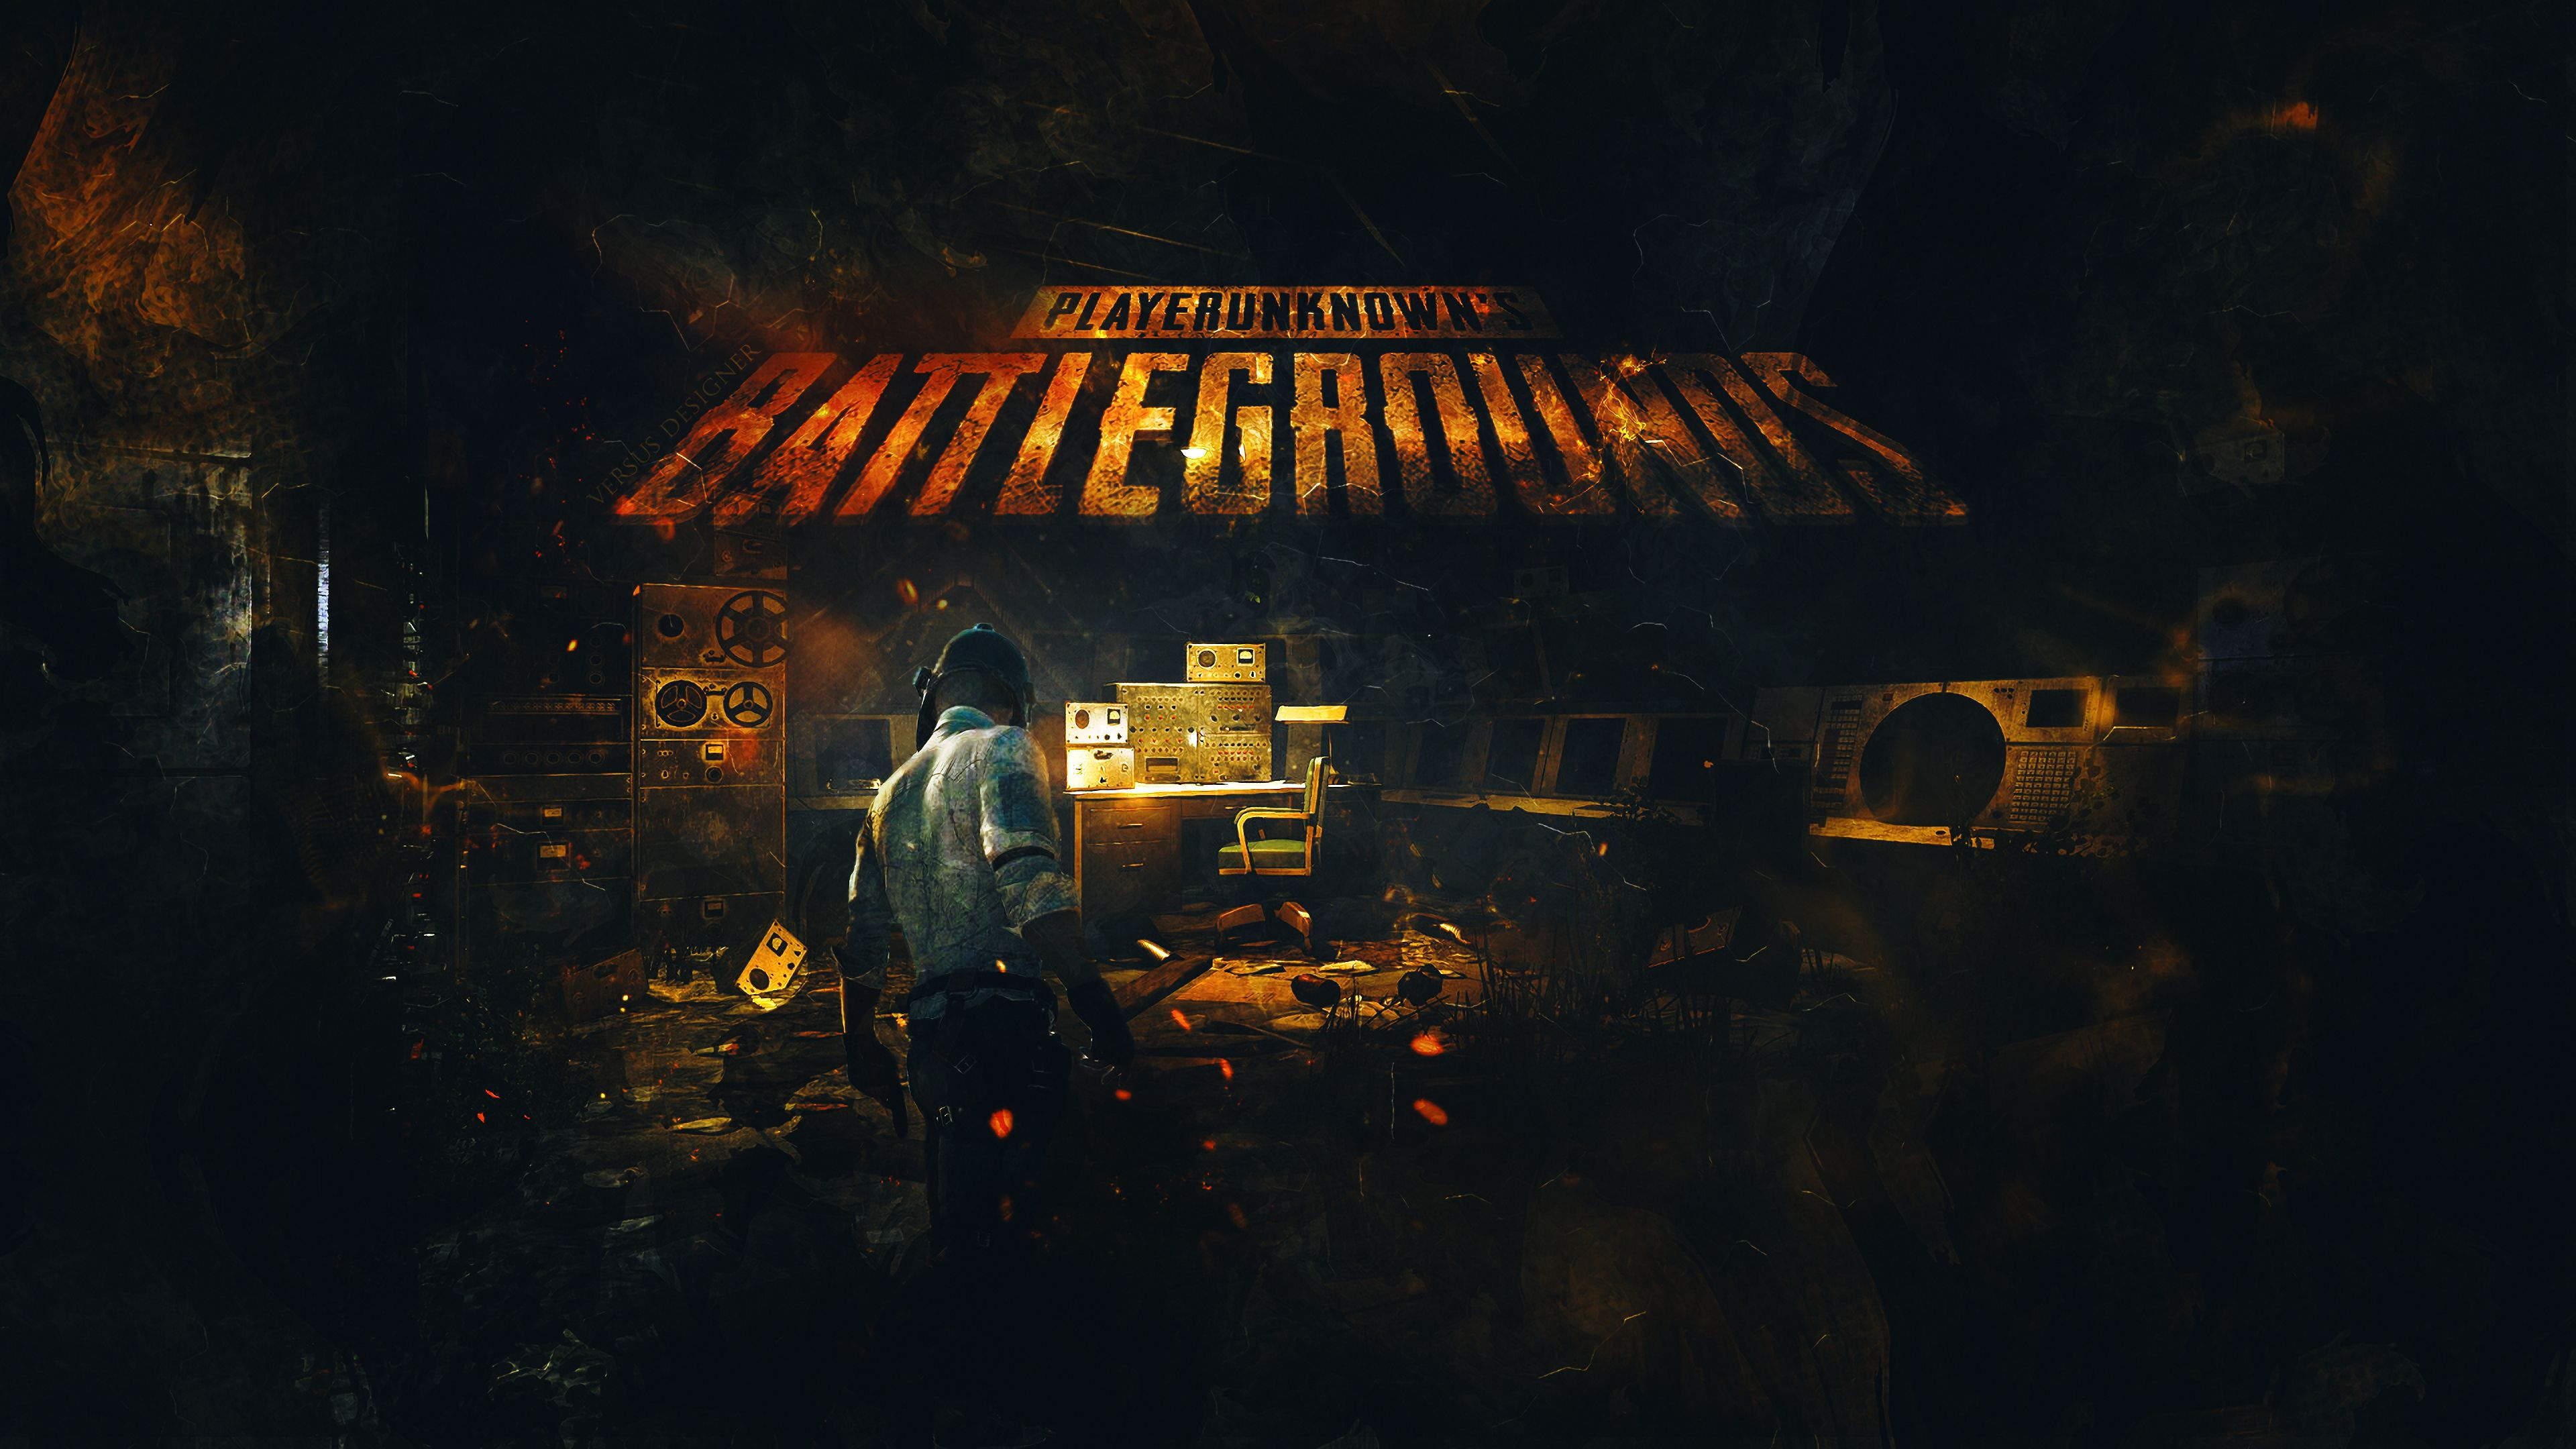 Pubg Wallpaper Themes: PlayerUnknown's Battlegrounds: PUBG Wallpapers And Photos